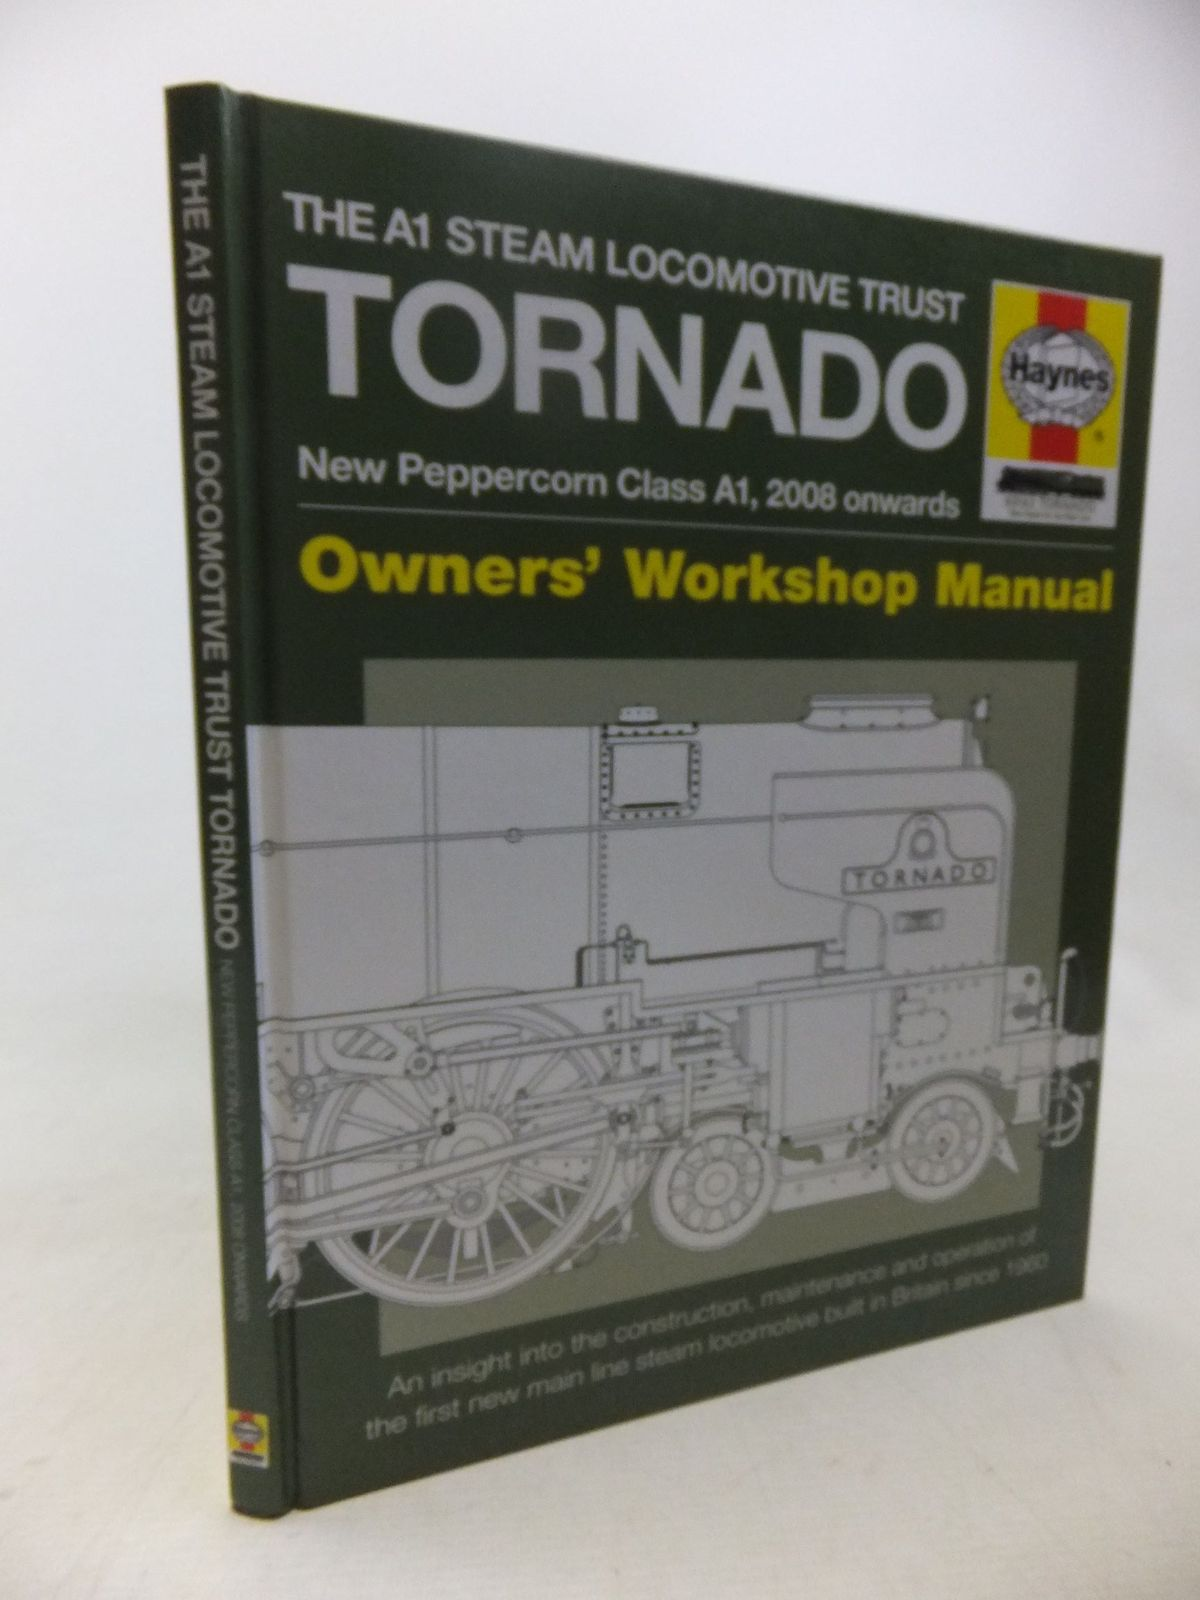 Photo of THE A1 STEAM LOCOMOTIVE TRUST TORNADO NEW PEPPERCORN CLASS A1, 2008 ONWARDS OWNDERS' WORKSHOP MANUAL written by Smith, Geoff published by Haynes Publishing Group (STOCK CODE: 1713617)  for sale by Stella & Rose's Books